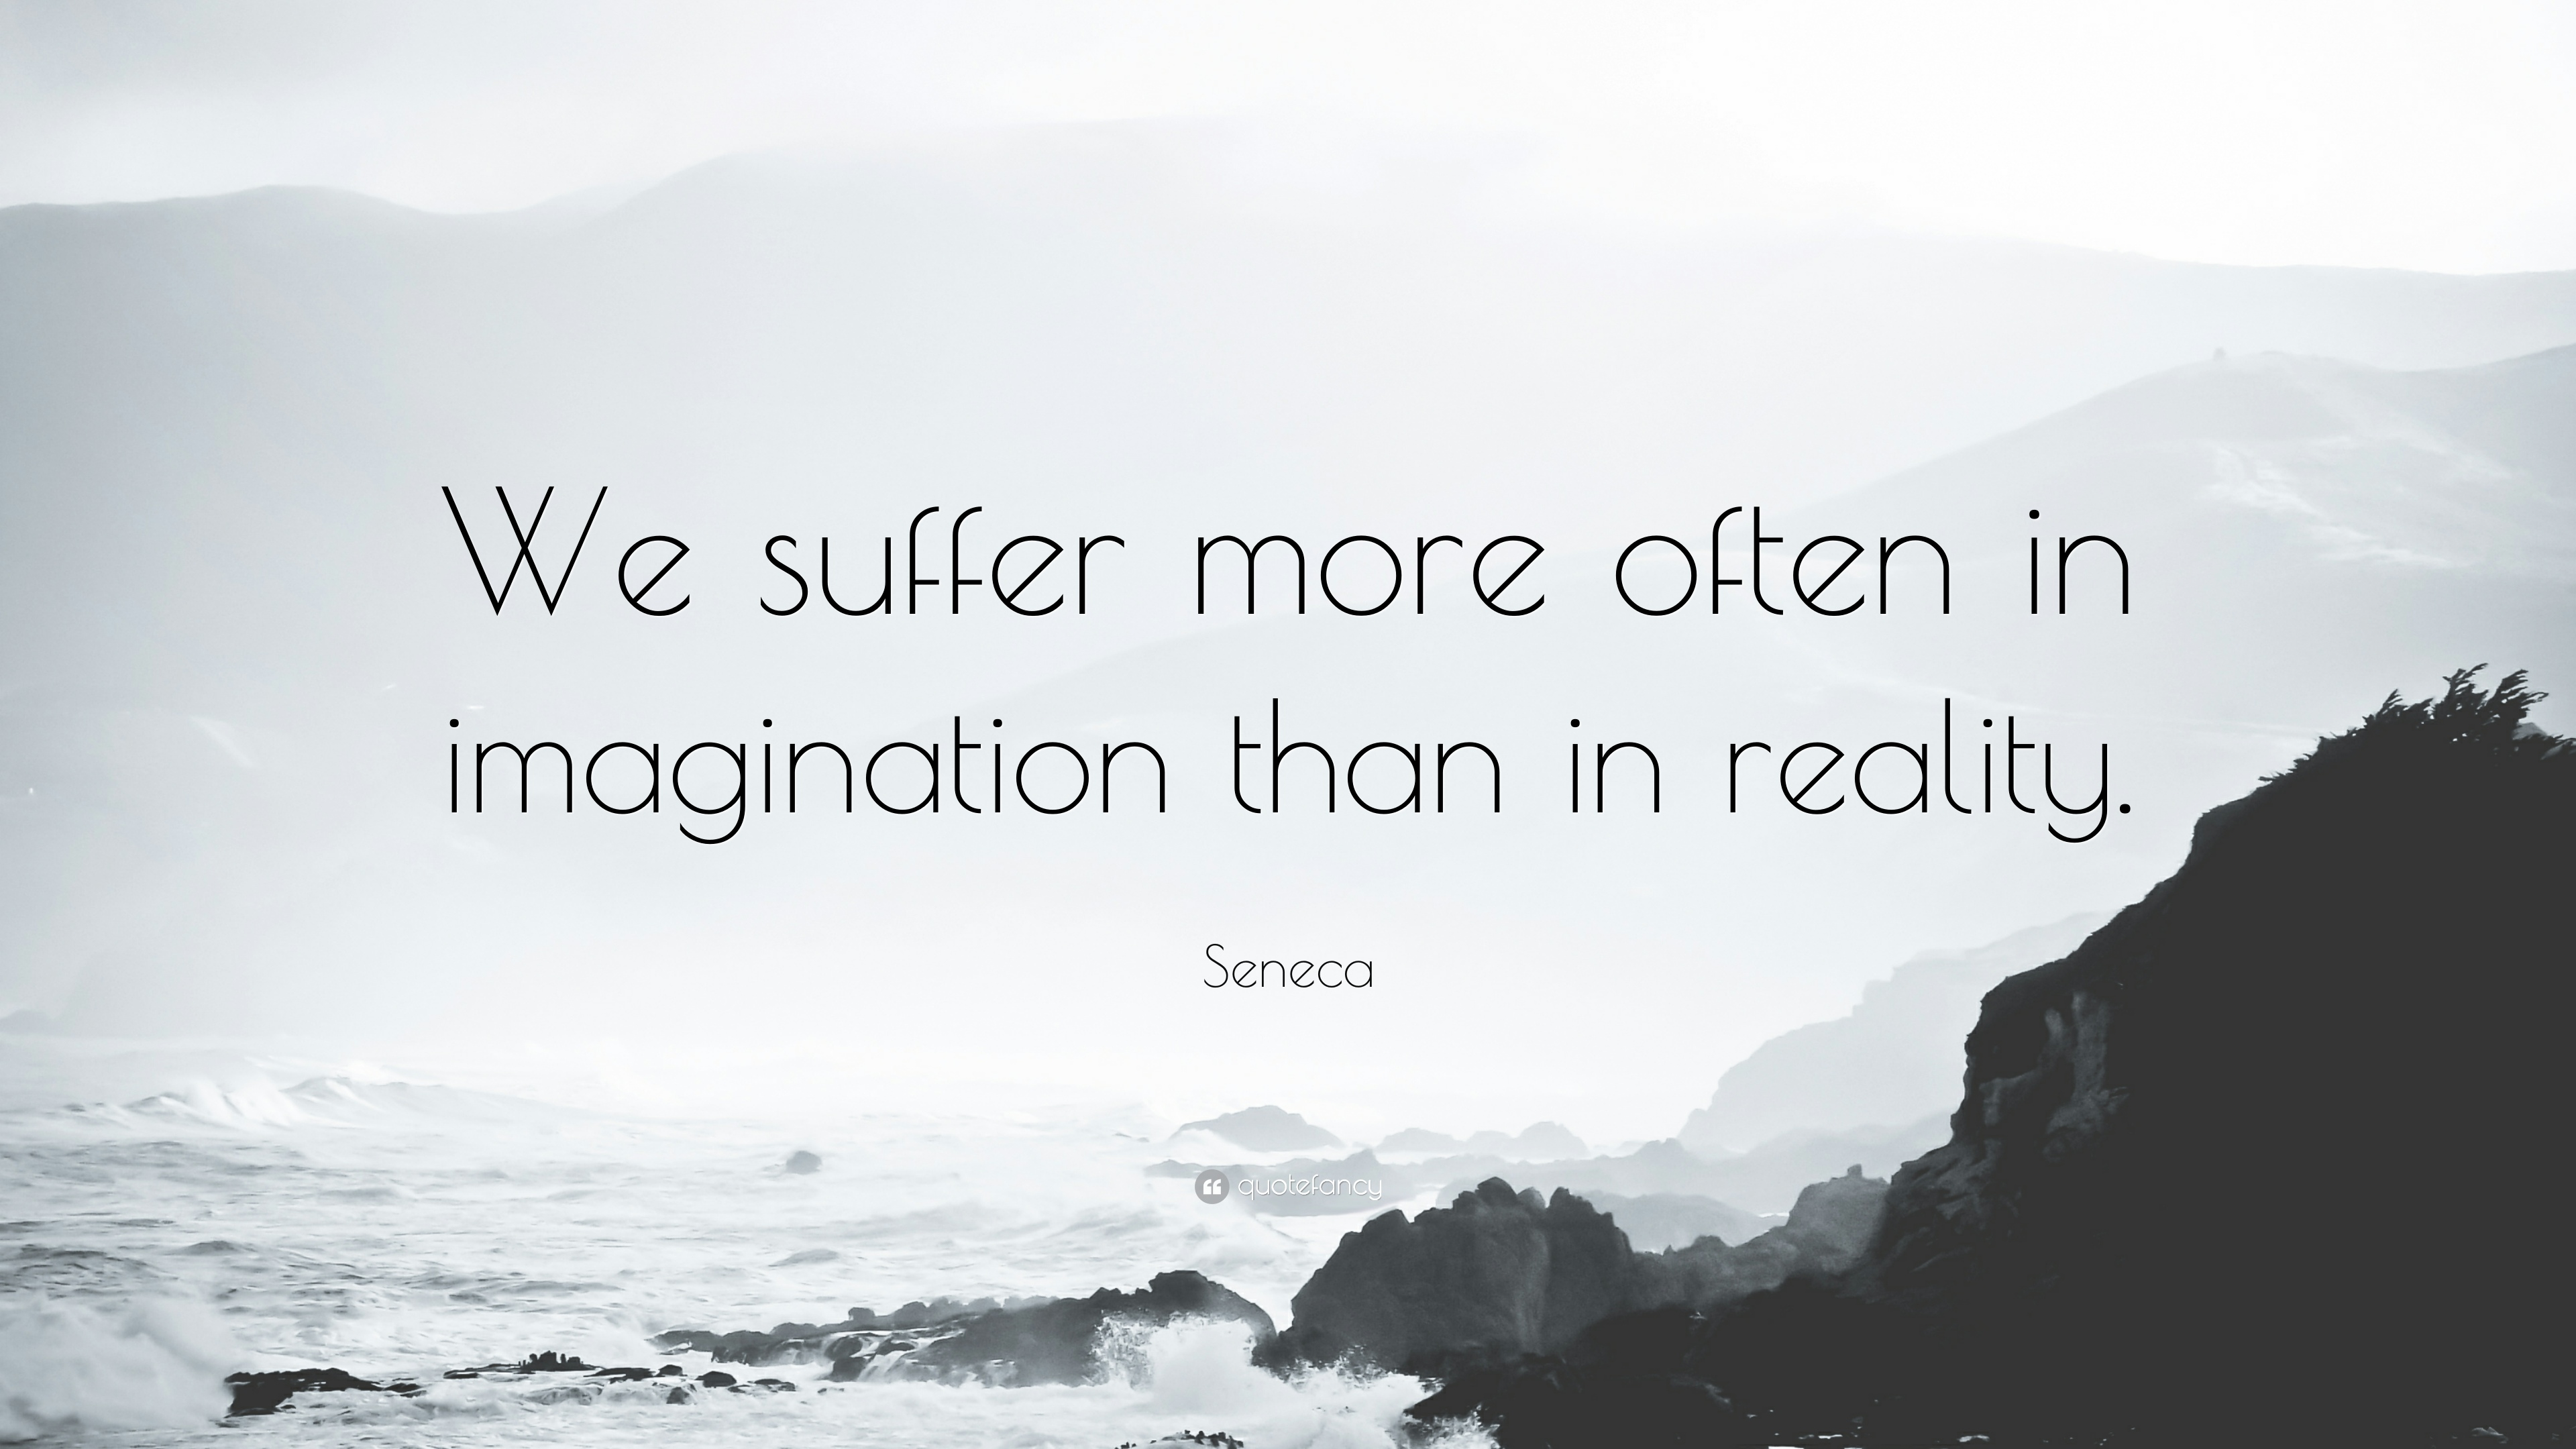 18292-Seneca-Quote-We-suffer-more-often-in-imagination-than-in-reality